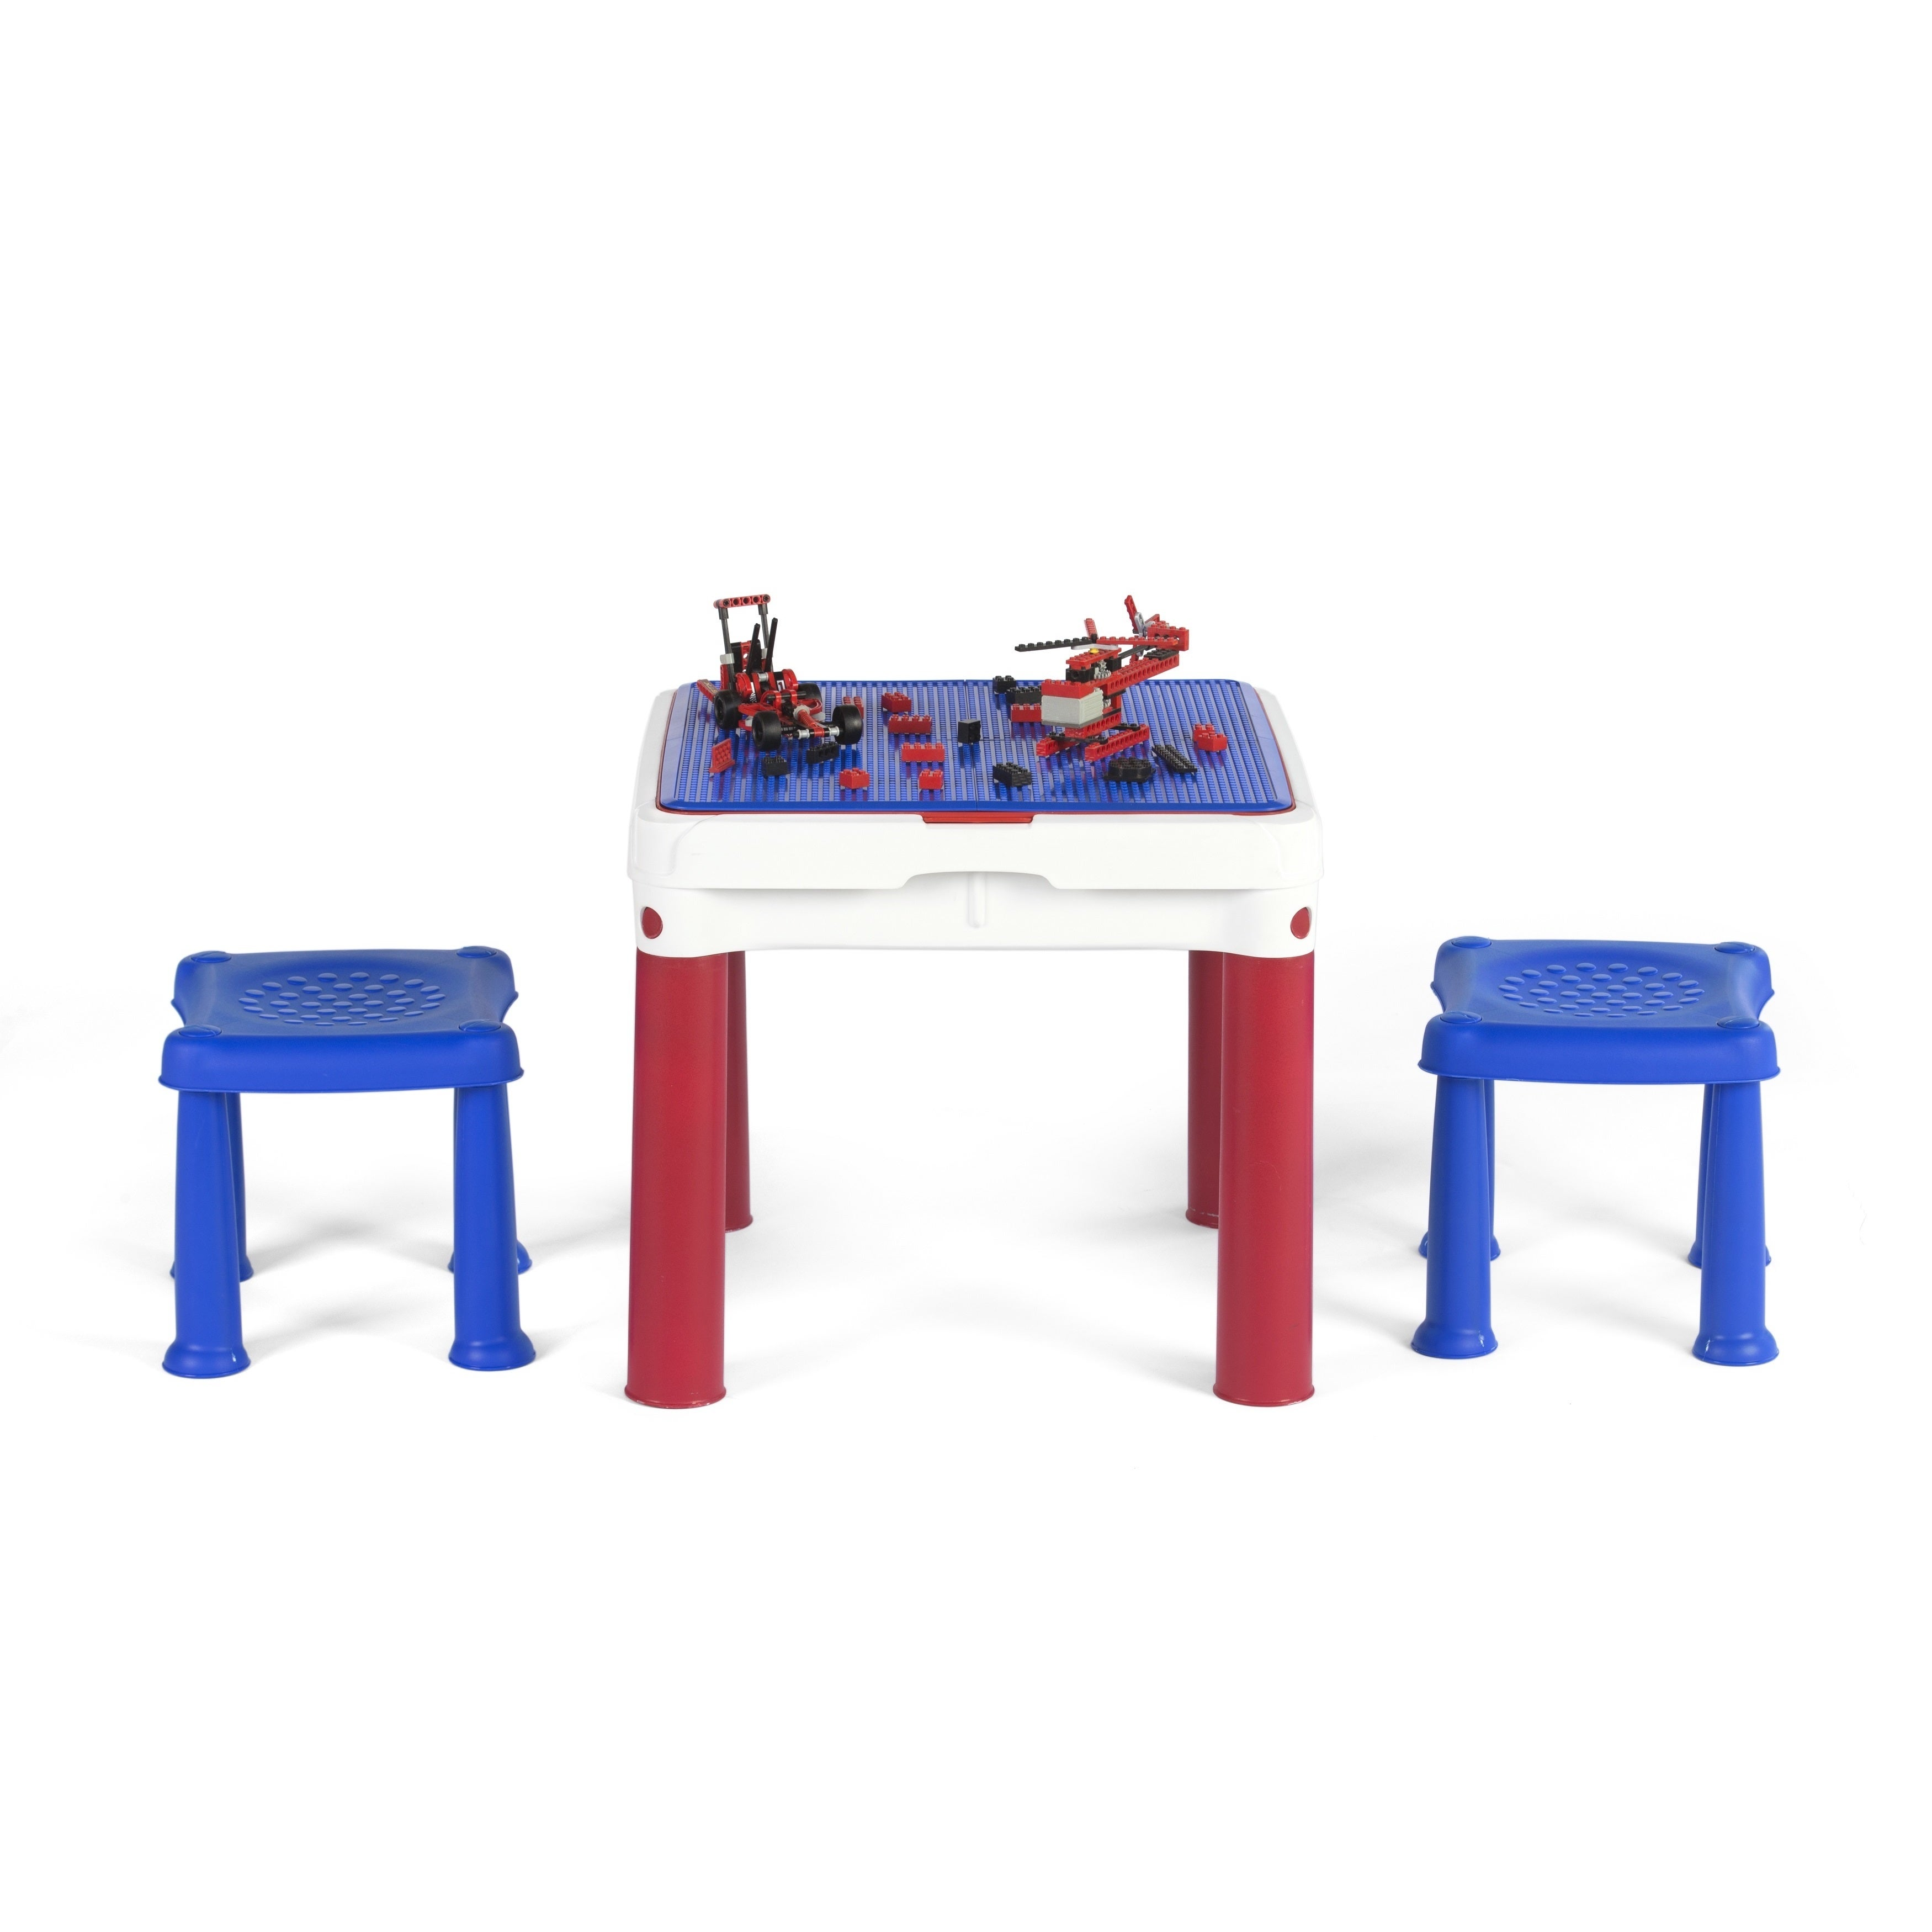 Keter ConstrucTable Kids Activity and Play Table with 2 Chairs - Blue -  Free Shipping Today - Overstock.com - 19517722